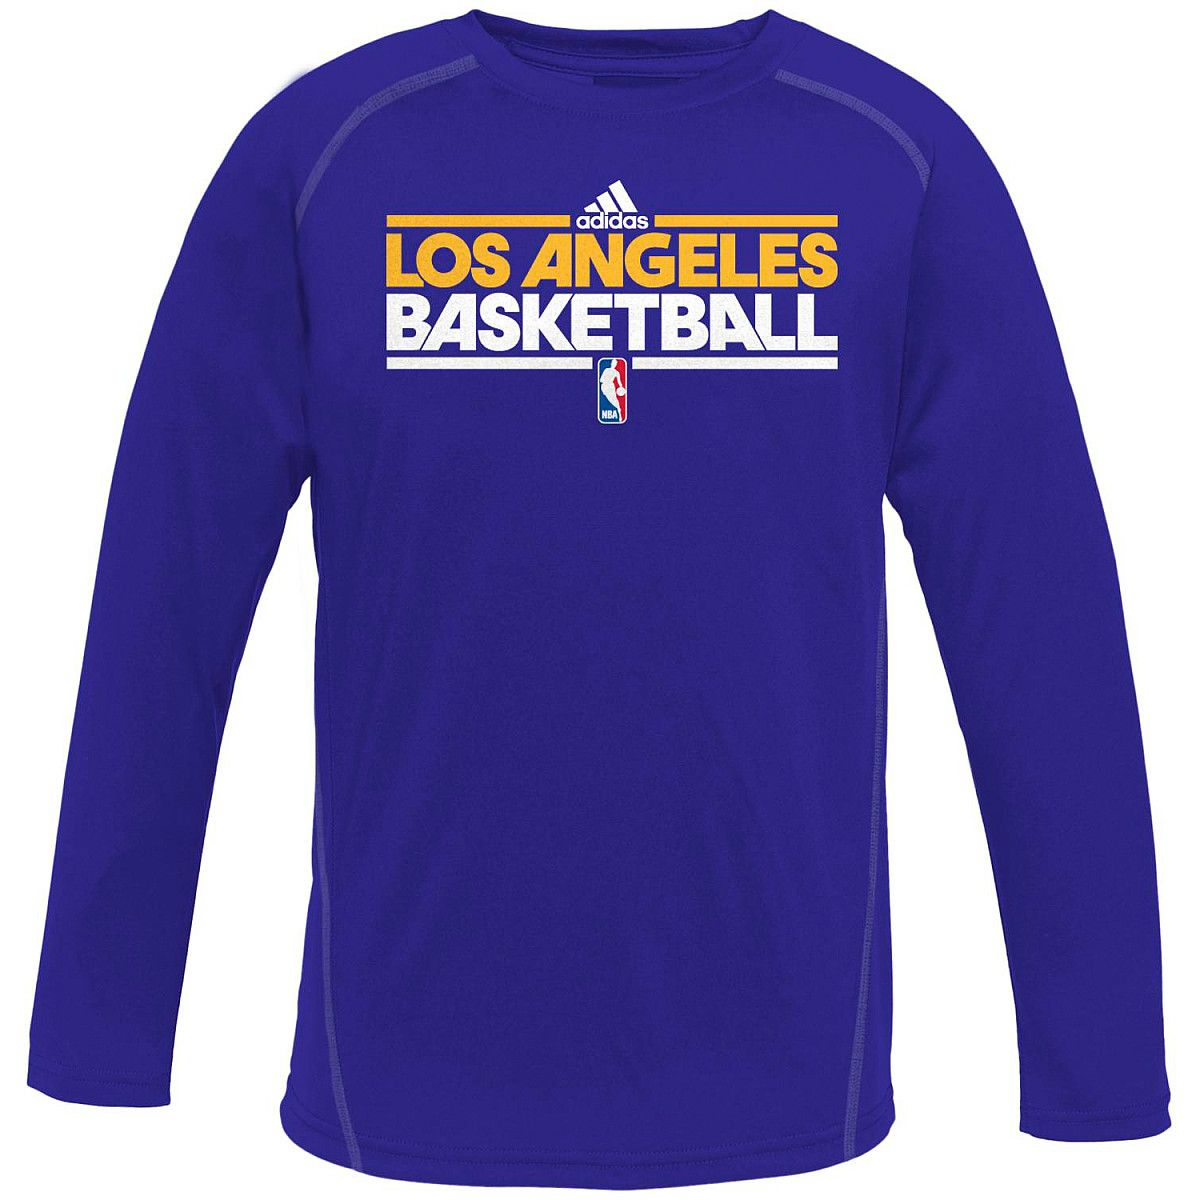 48fca8d2ef3 adidas Los Angeles Lakers Youth (Sizes 8-20) ClimaLite On-Court Long Sleeve  T-Shirt - NBAStore.com